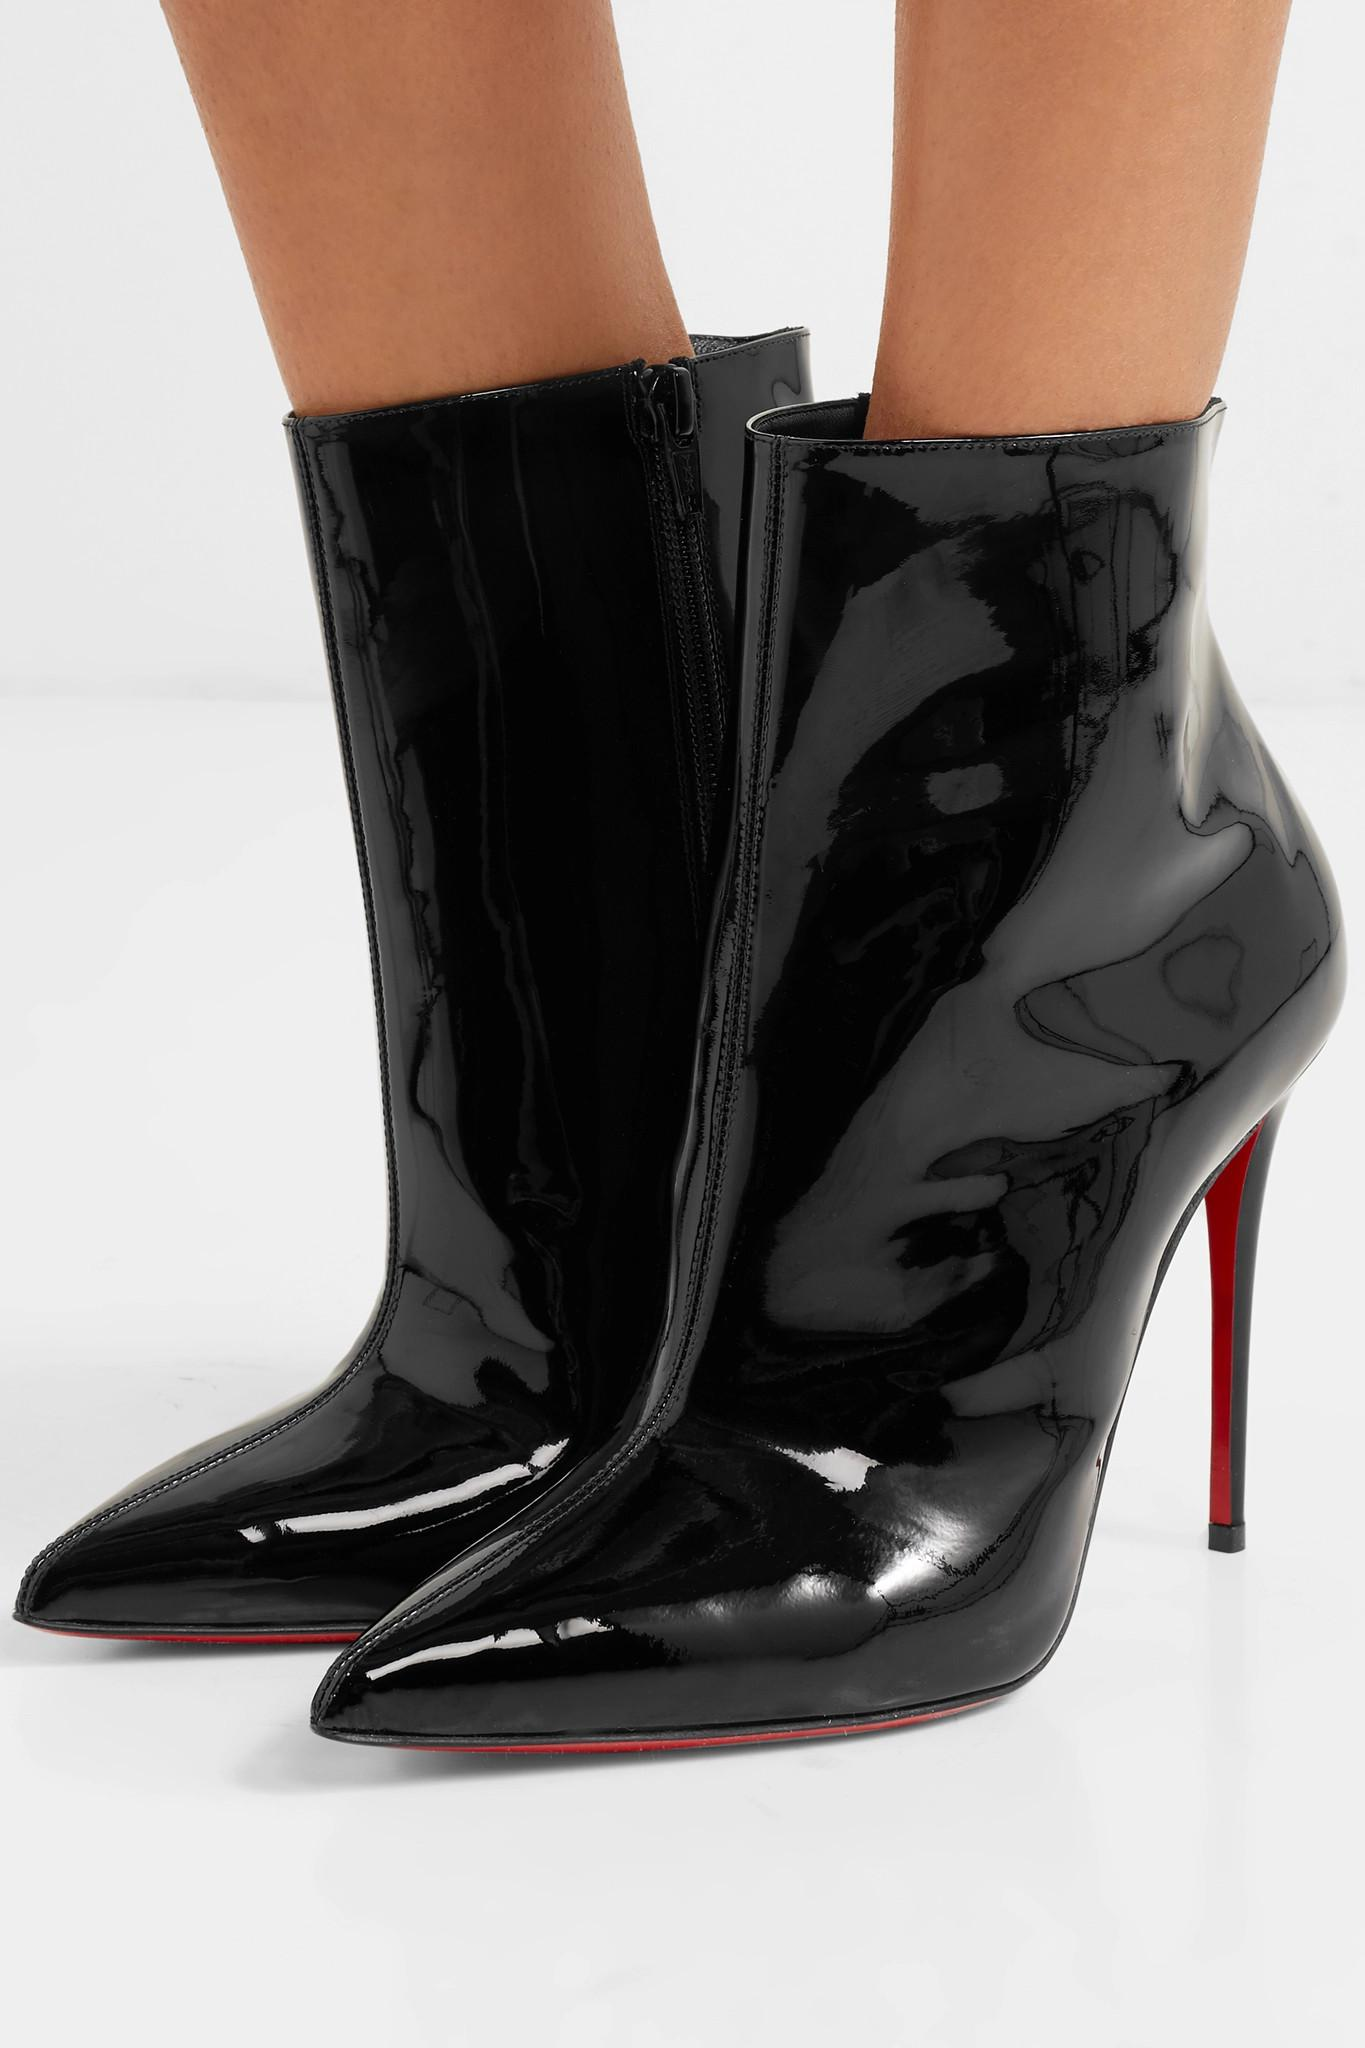 6a48346aef5 Christian Louboutin - Black So Kate Booty 100 Patent-leather Ankle Boots -  Lyst. View fullscreen